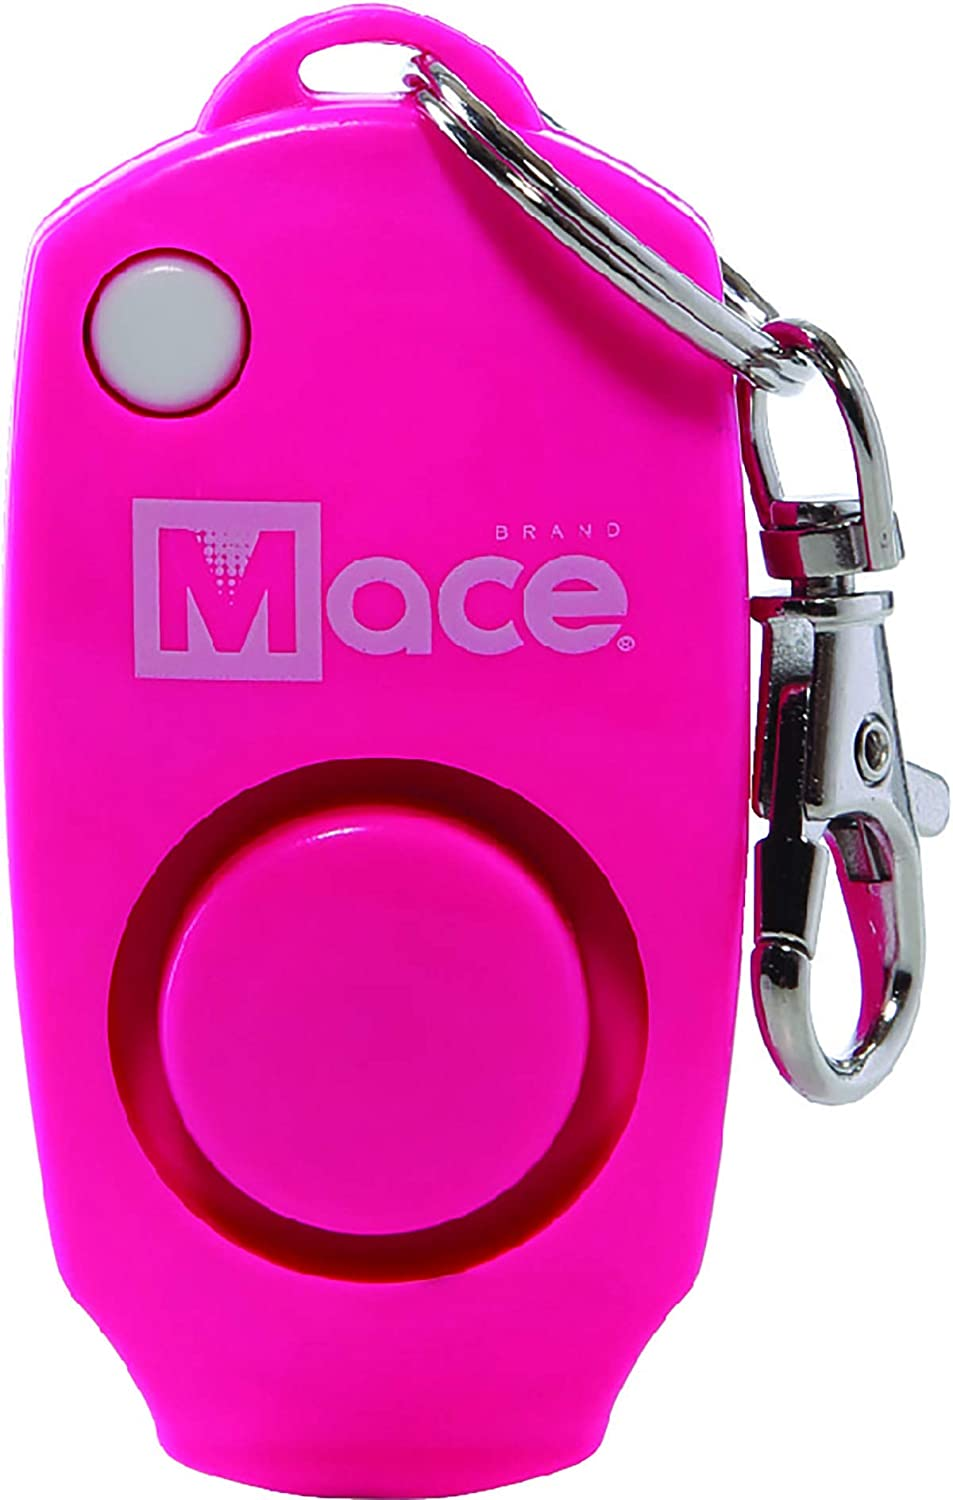 Pink for Women and Hidden Off Button for Self Defense Backup Whistle Mace Brand 130dB Personal Alarm Key Chain with Bag Clip